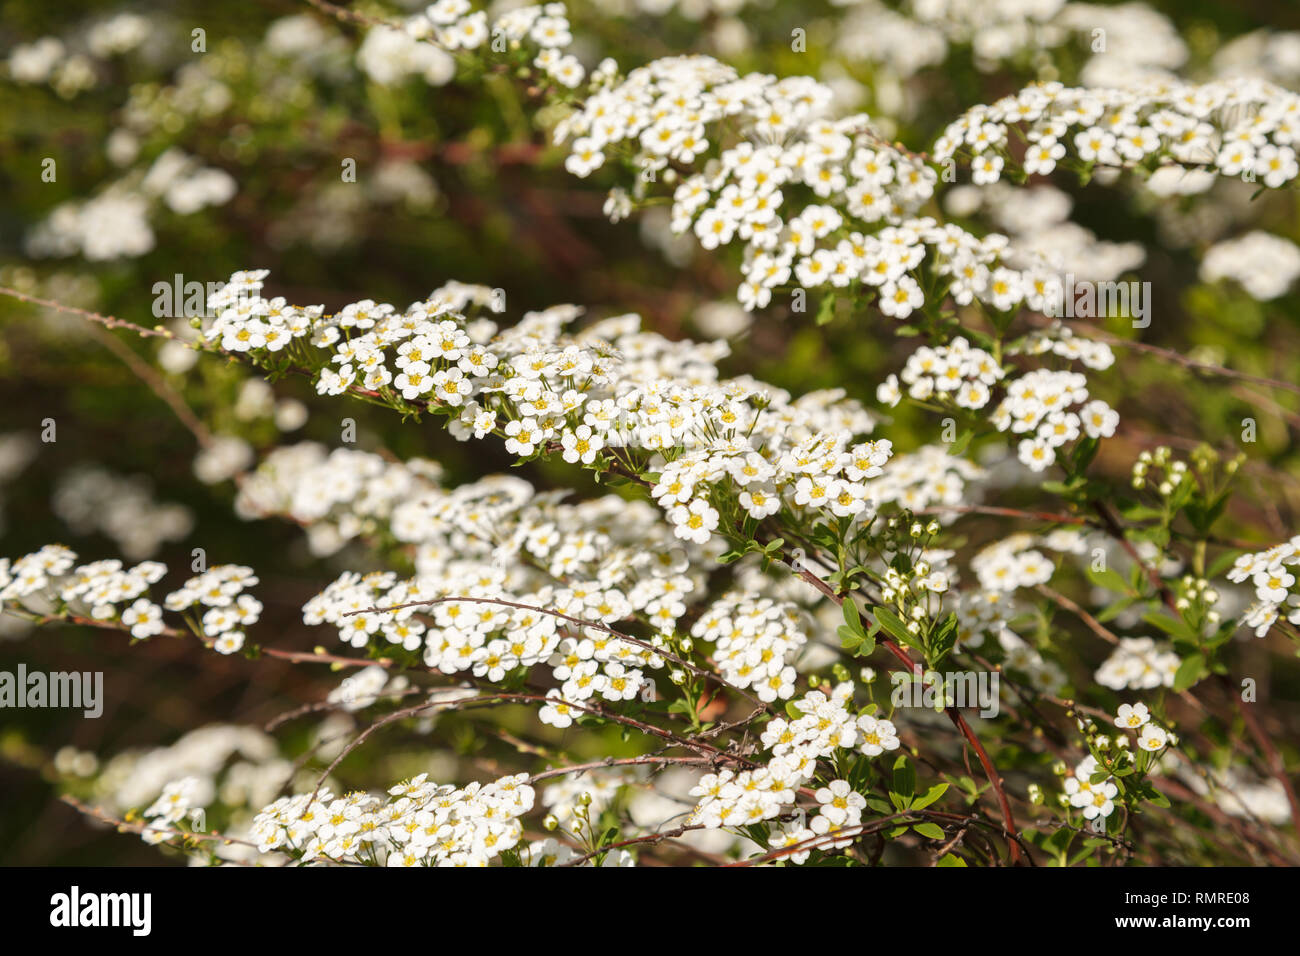 Arbusto Fiori Bianchi.Beautiful Spring Flowers Blossoming On A Shrub White Spiraea